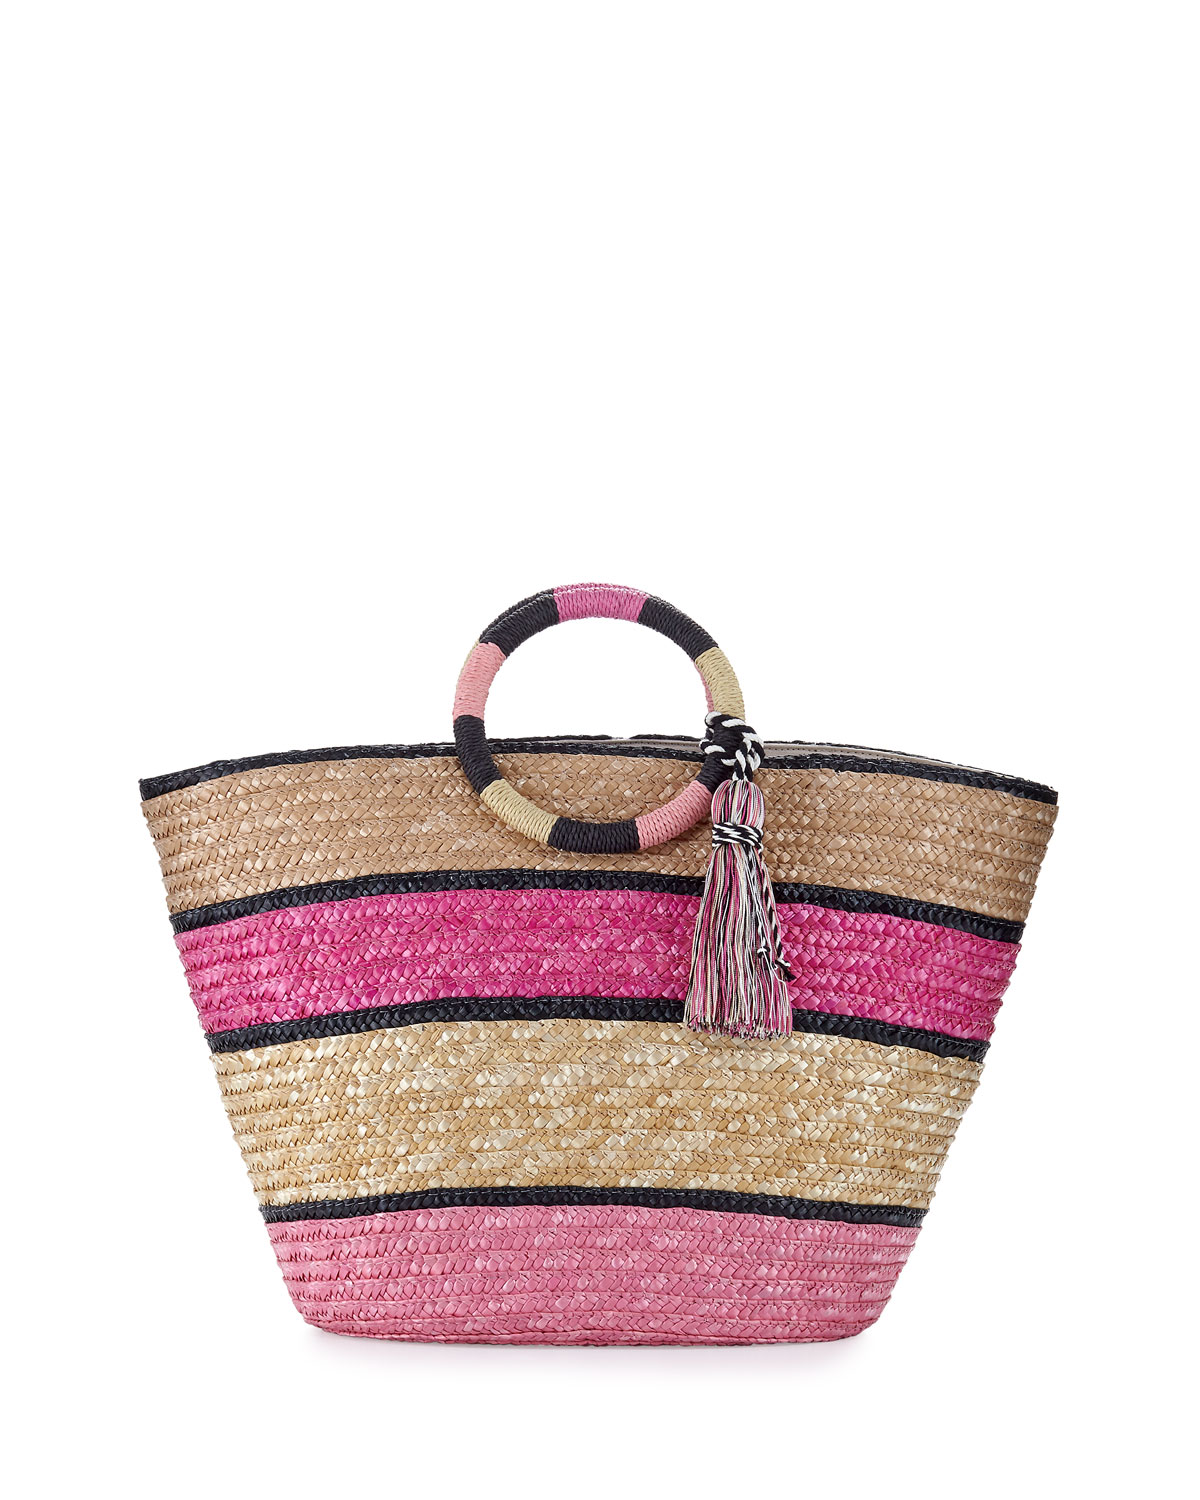 Striped Woven Straw Tote Bag